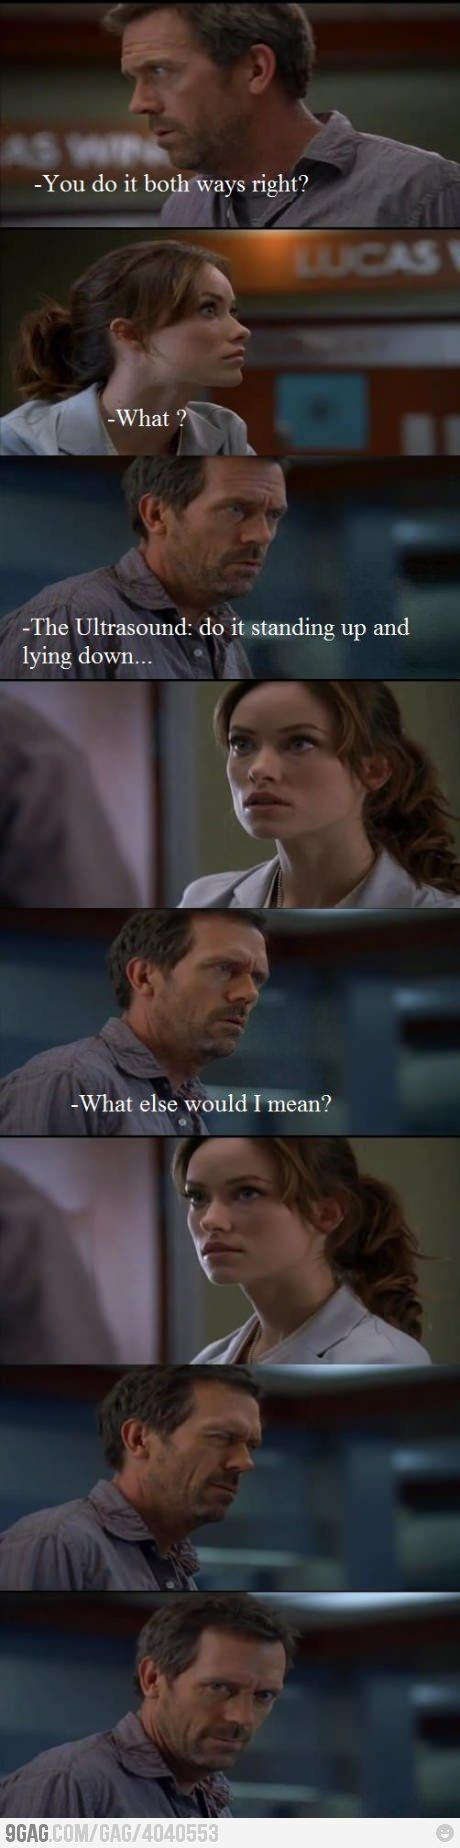 House; Asking about Bi to Olivia